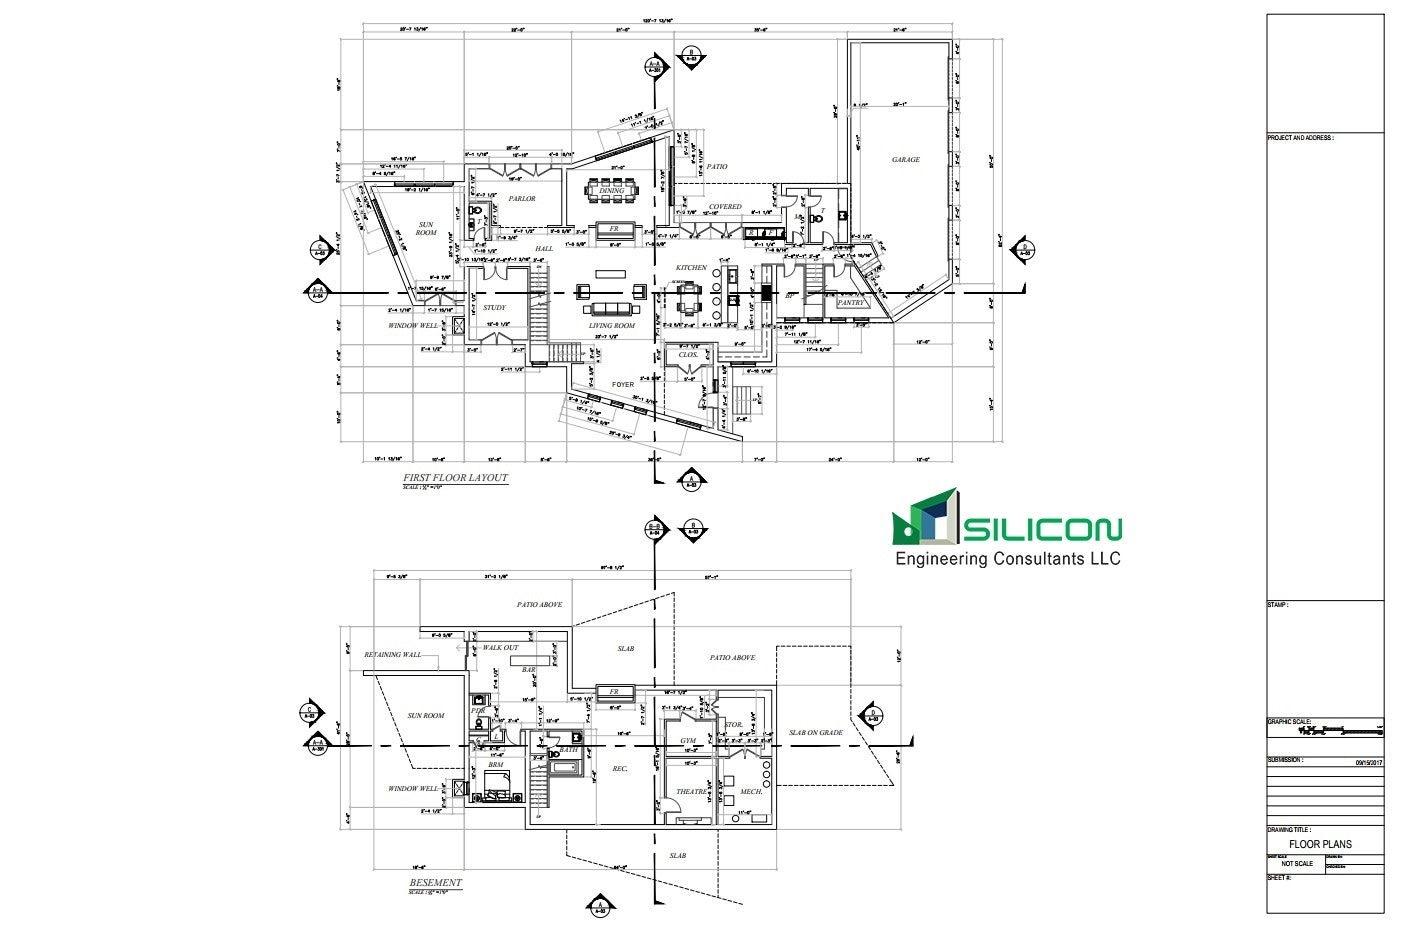 Architectural Drafting Services   Silicon Engineering Consultants LLC